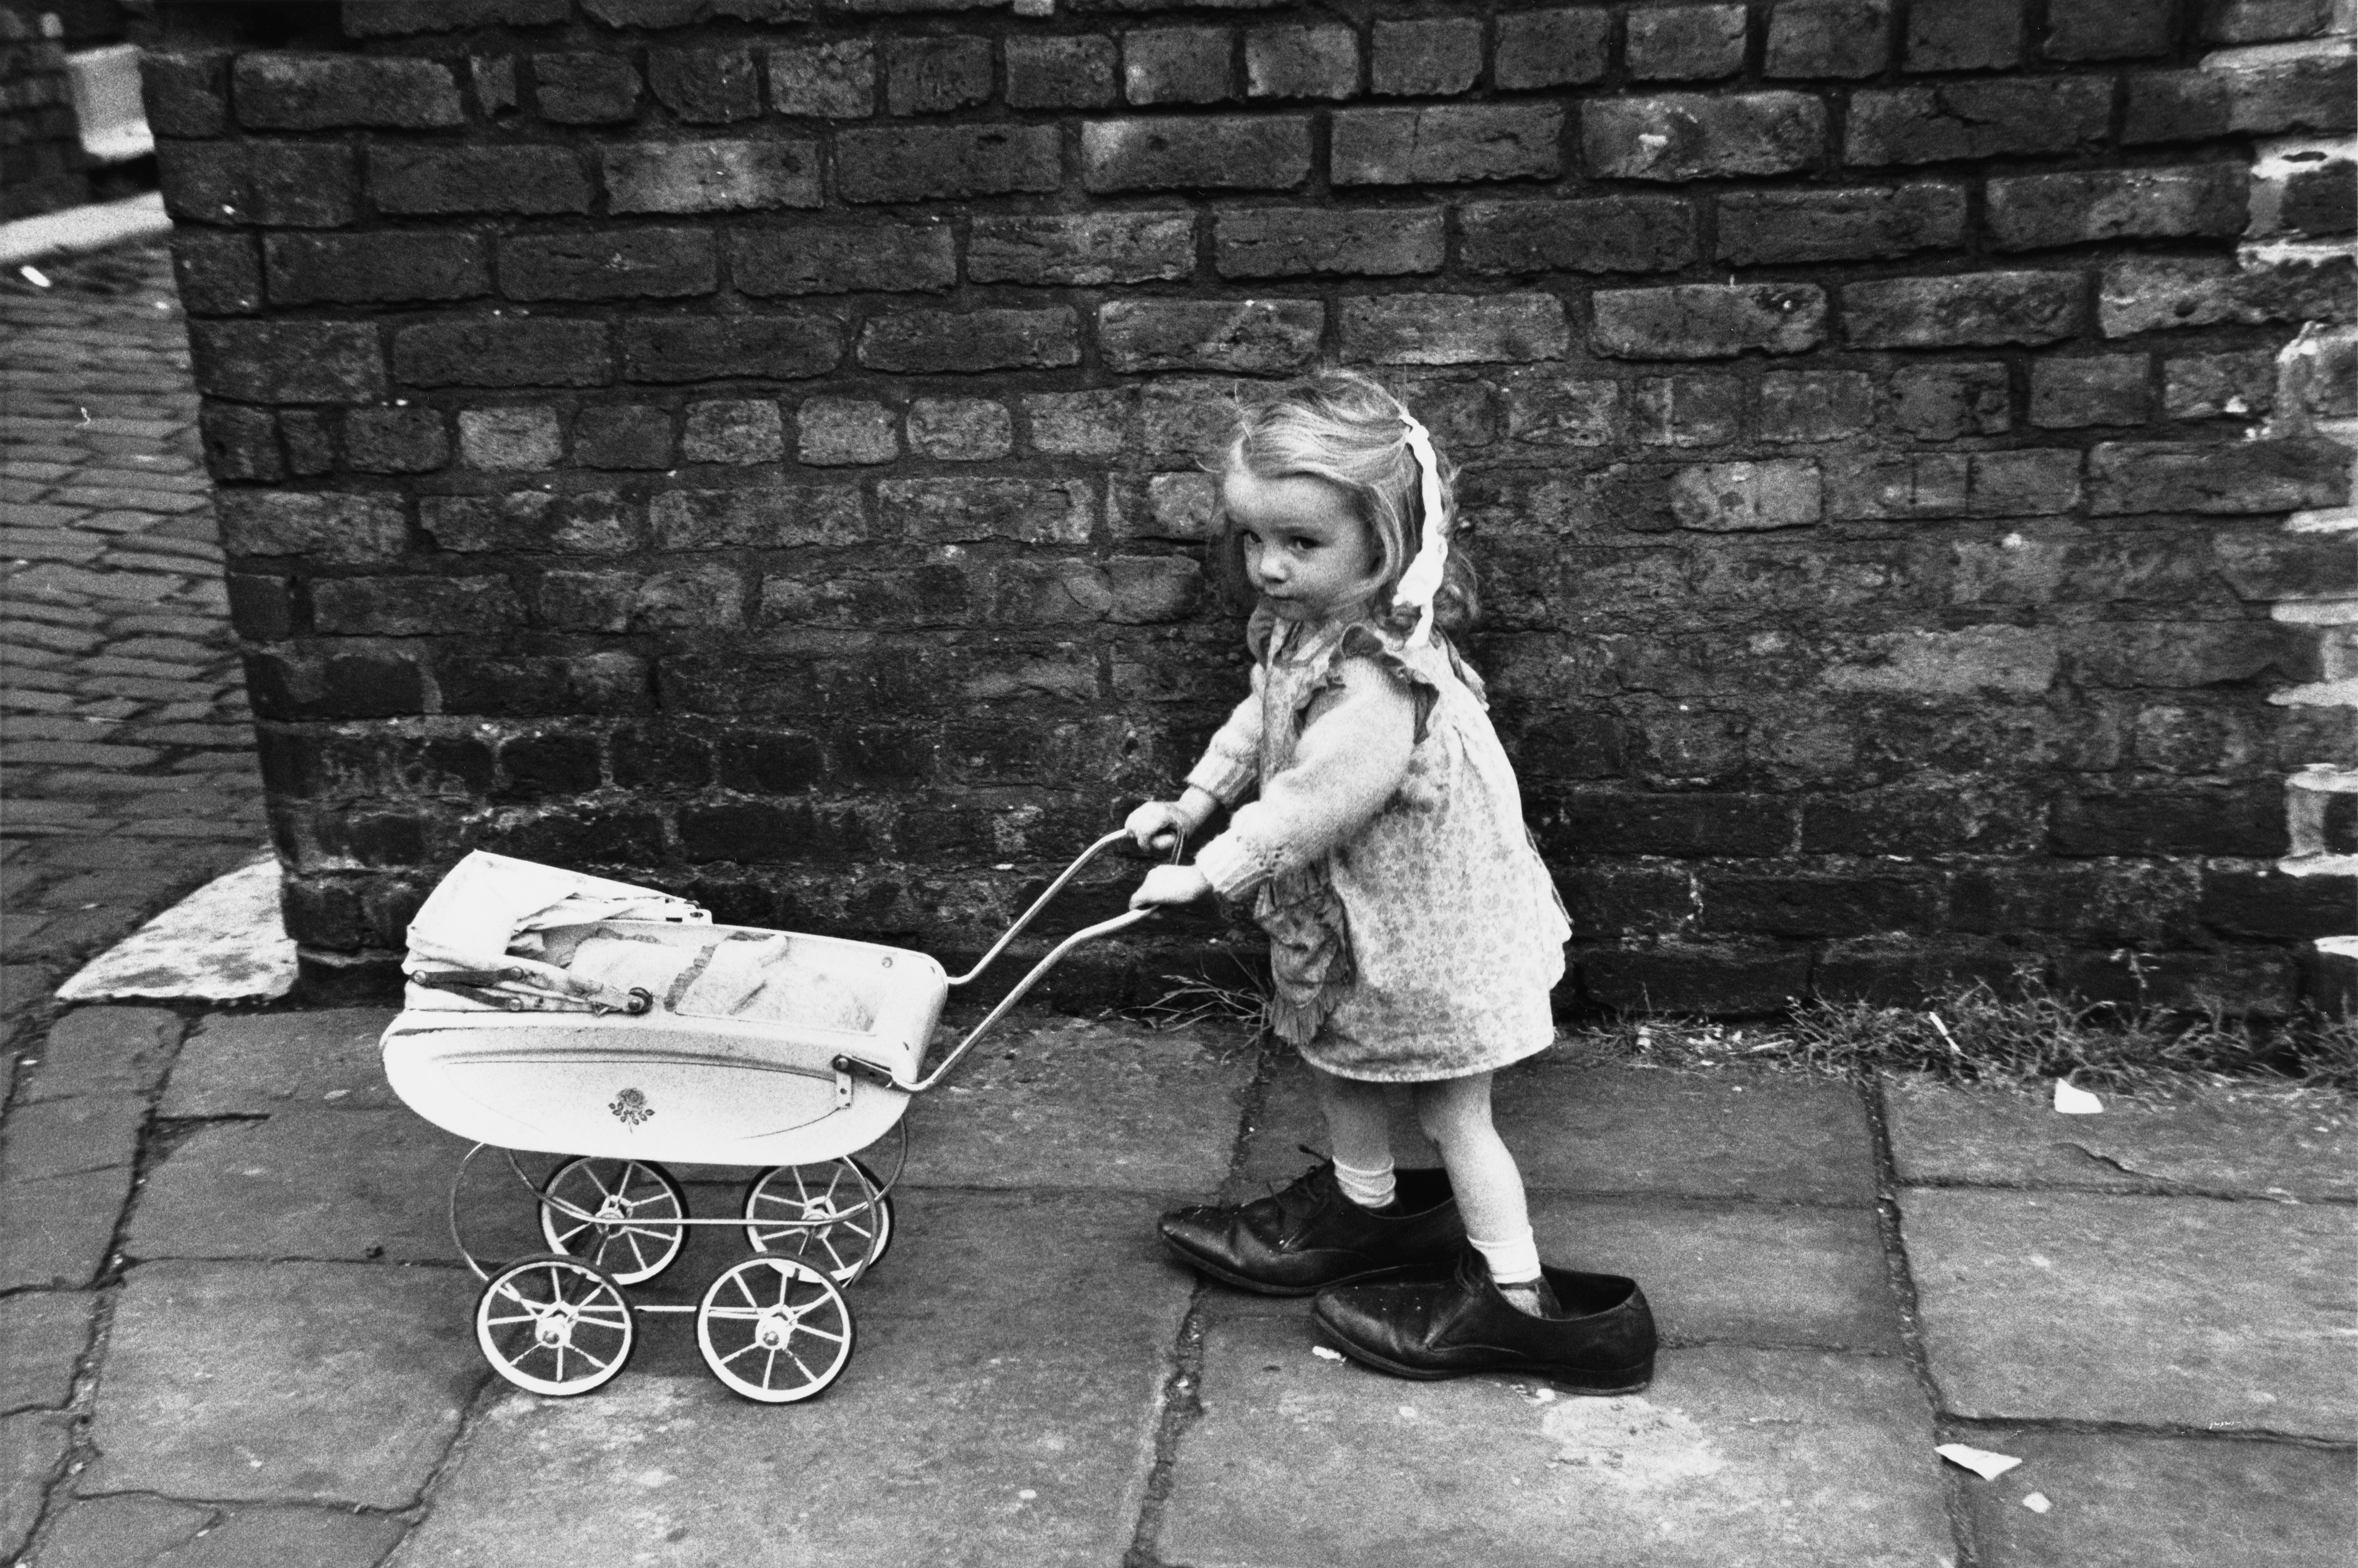 Little Girl with Toy Pram in Large Shoes, Manchester 1966. Photograph by Shirley Baker (1932-2014)